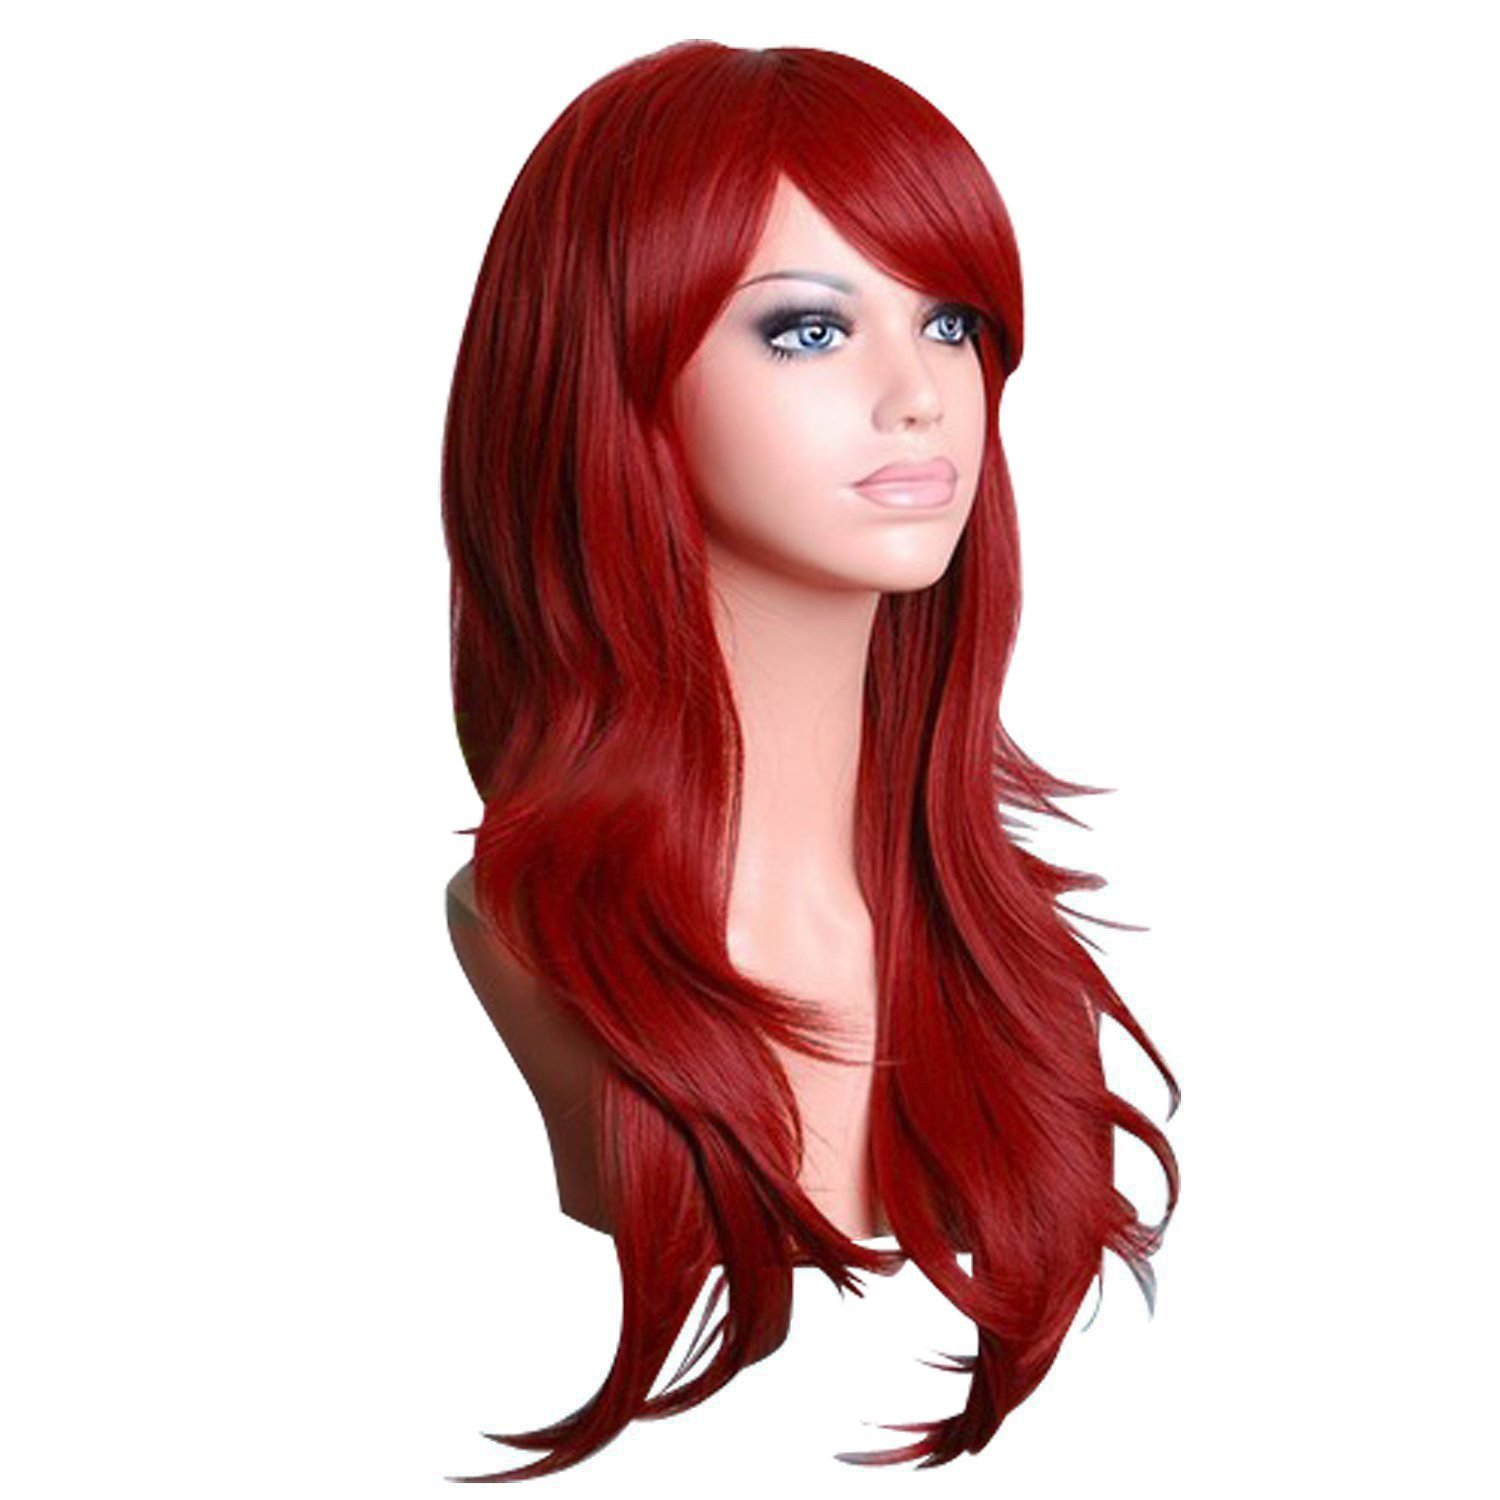 Red Wig, Acecharming Women's Ladies Dark Red Long Fashion Natural Full Curly Wig Cosplay Wigs Party Wig with Cap 50973